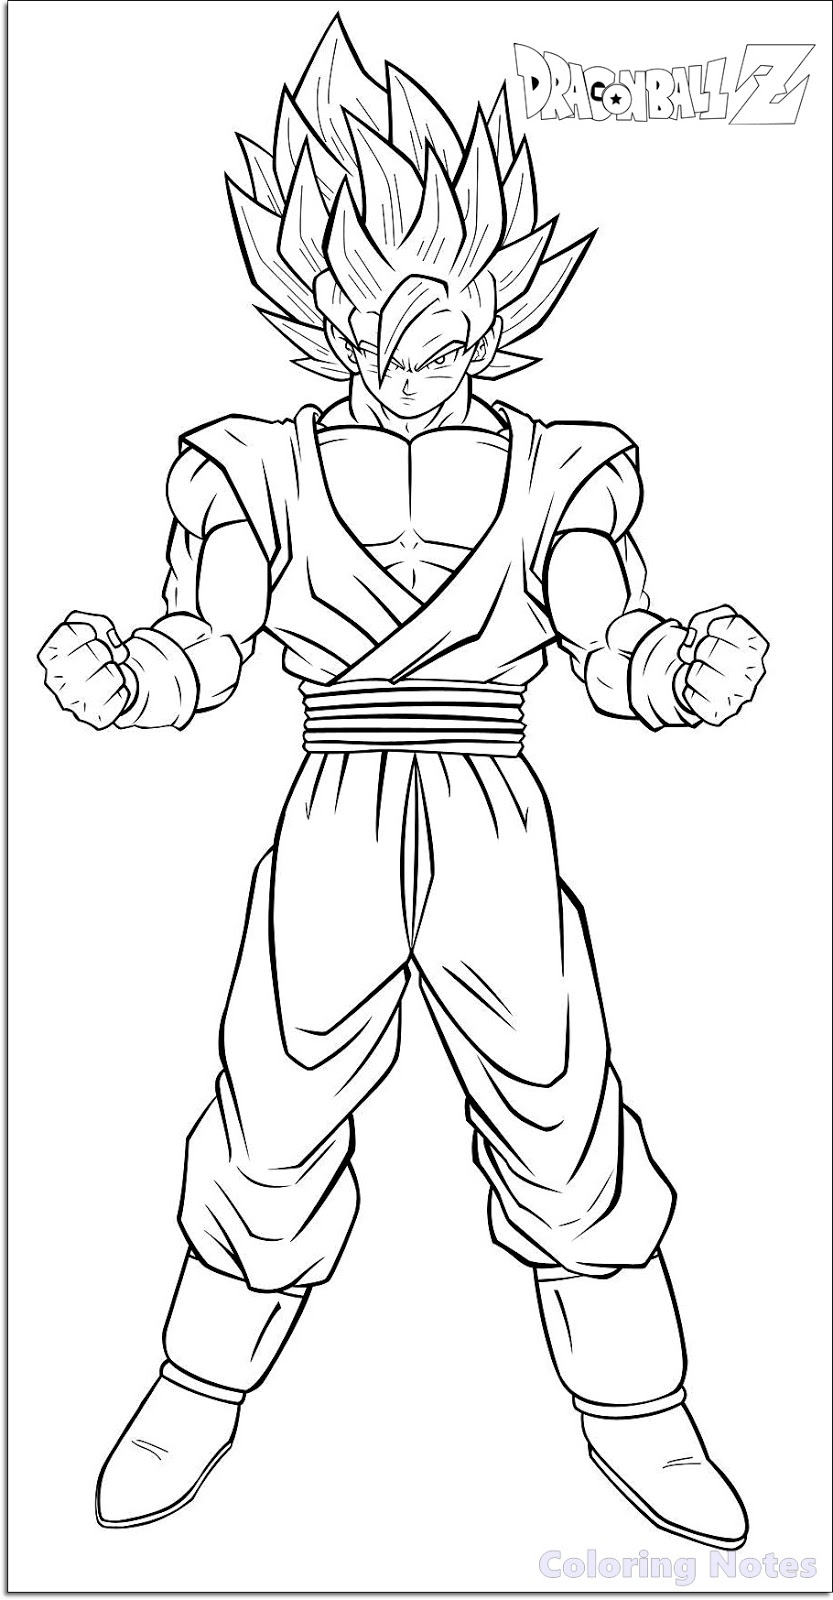 Dragon Ball Z 9 - Friv Free Coloring Pages For Children - Dragons ... | 1600x833